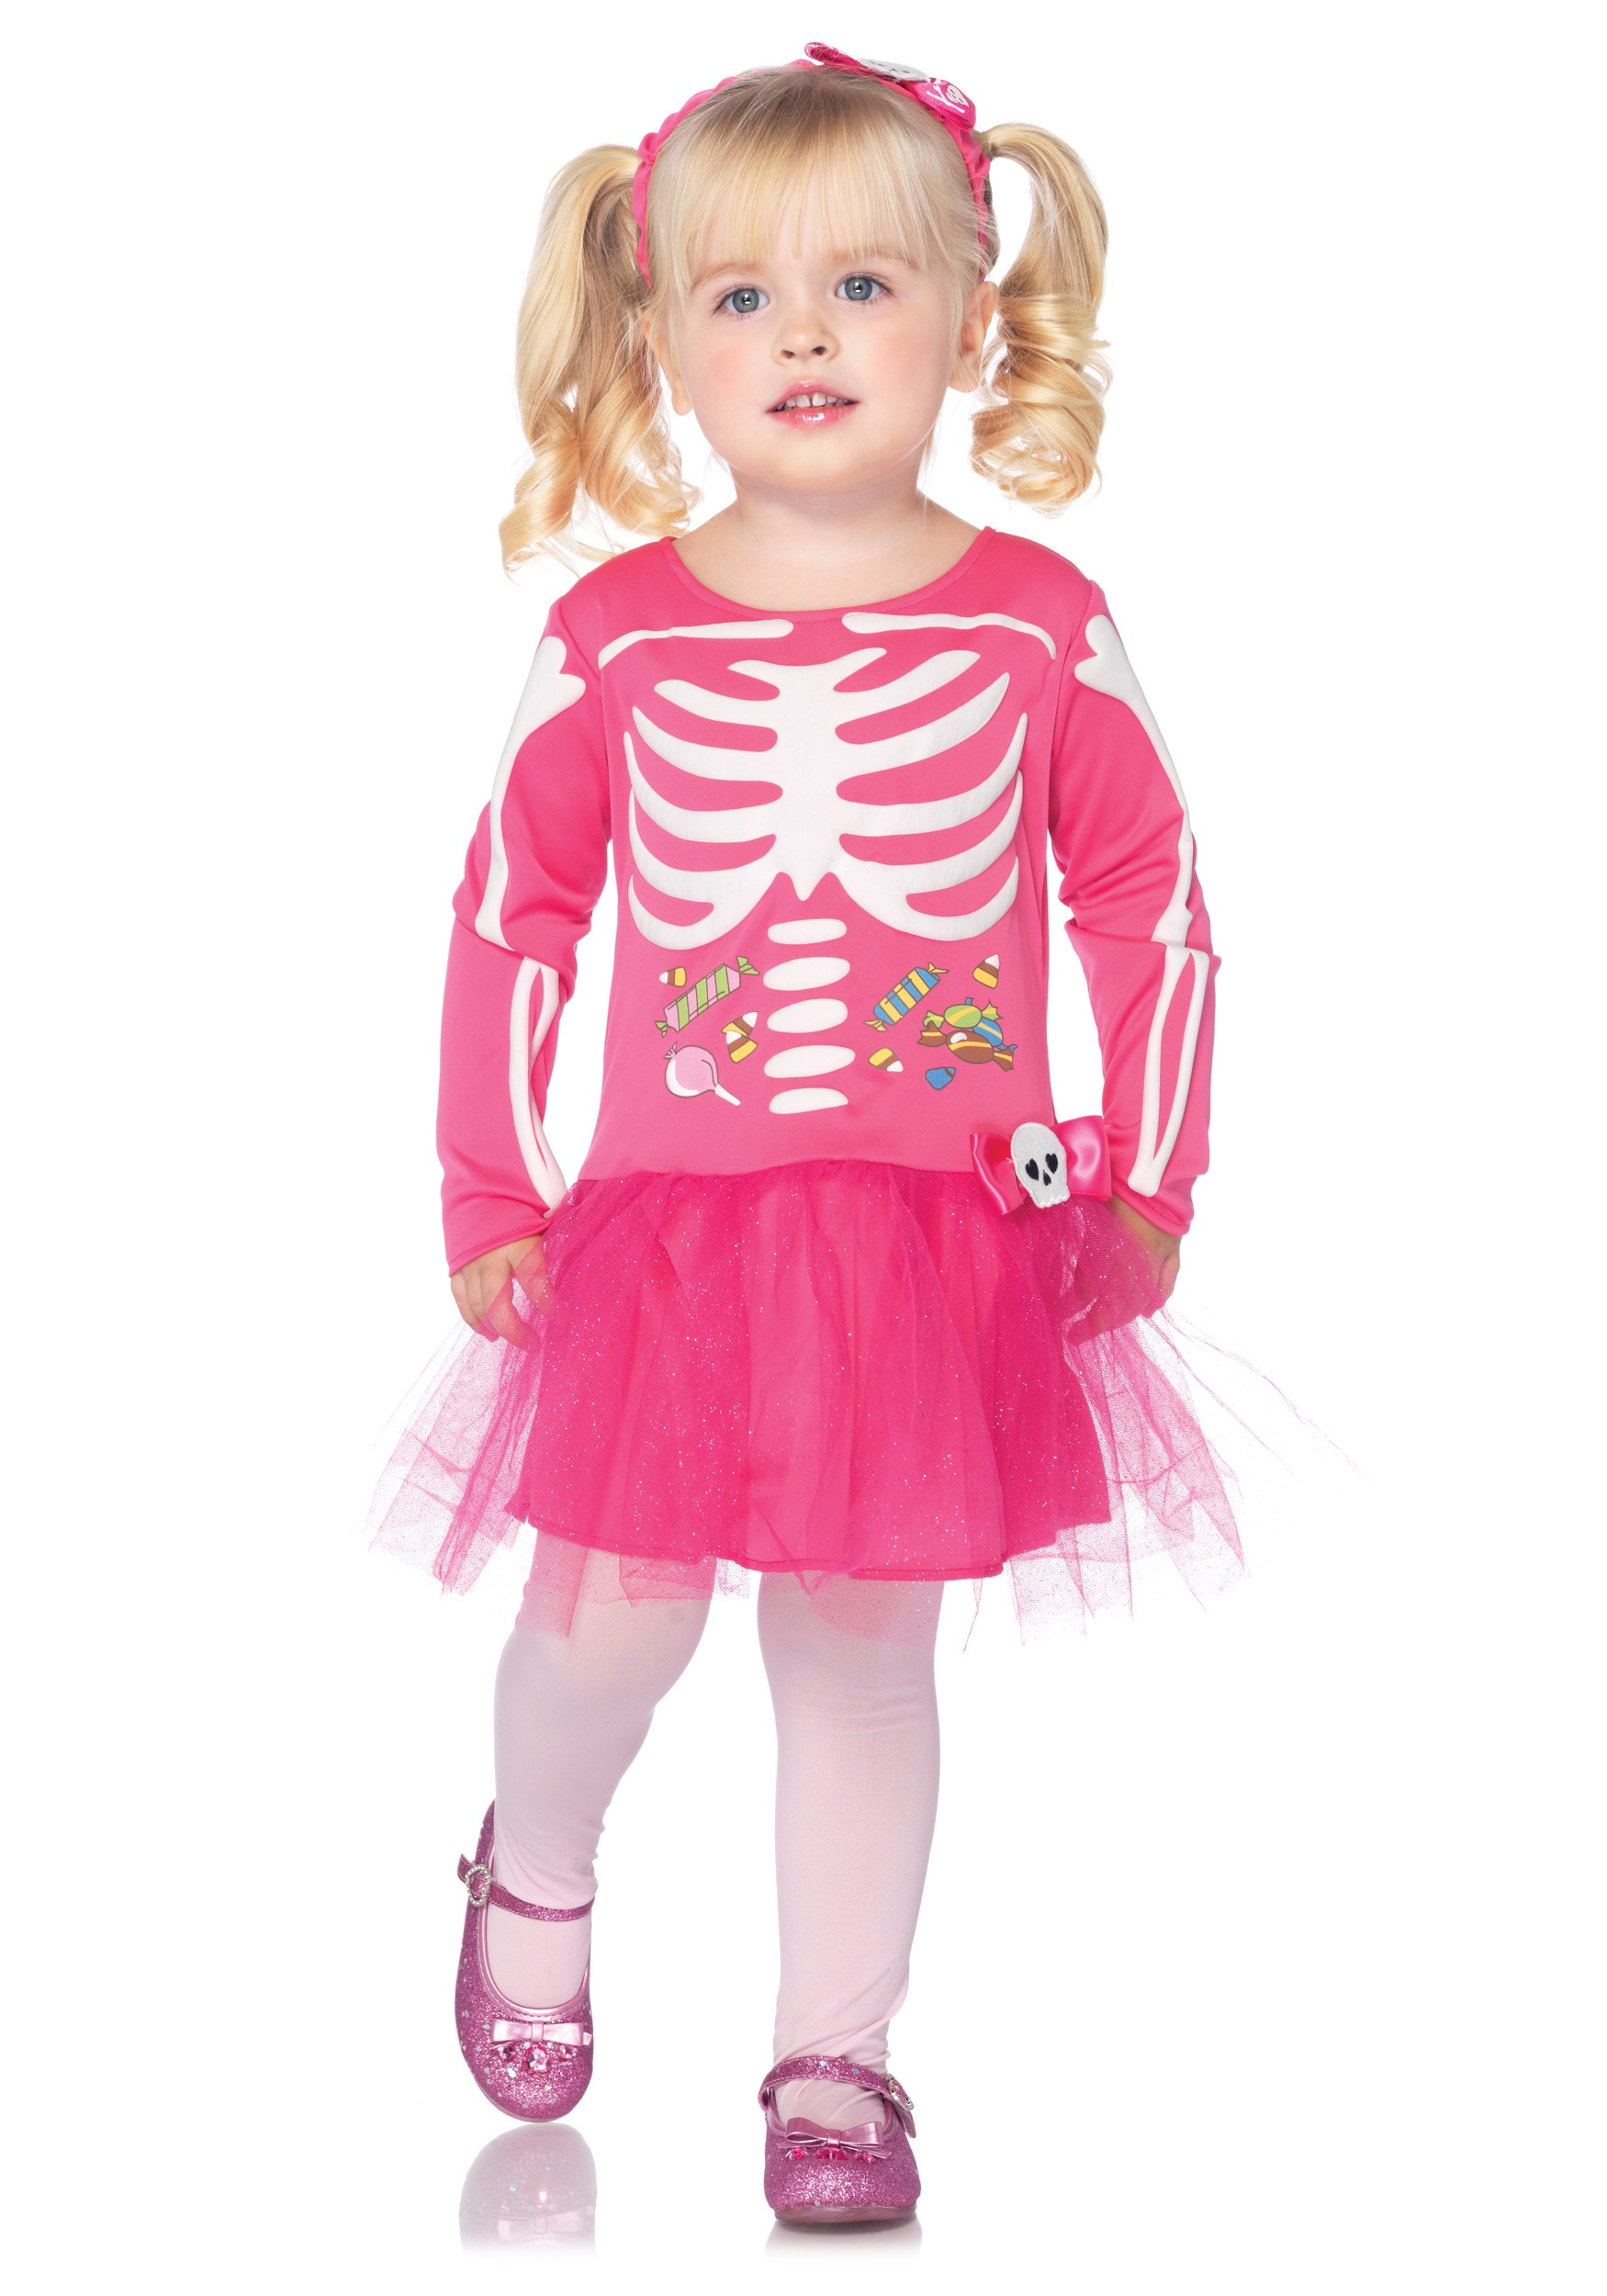 Toddler Candy Skeleton Costume  sc 1 st  Halloween Costumes & Toddler Candy Skeleton Costume - Halloween Costumes